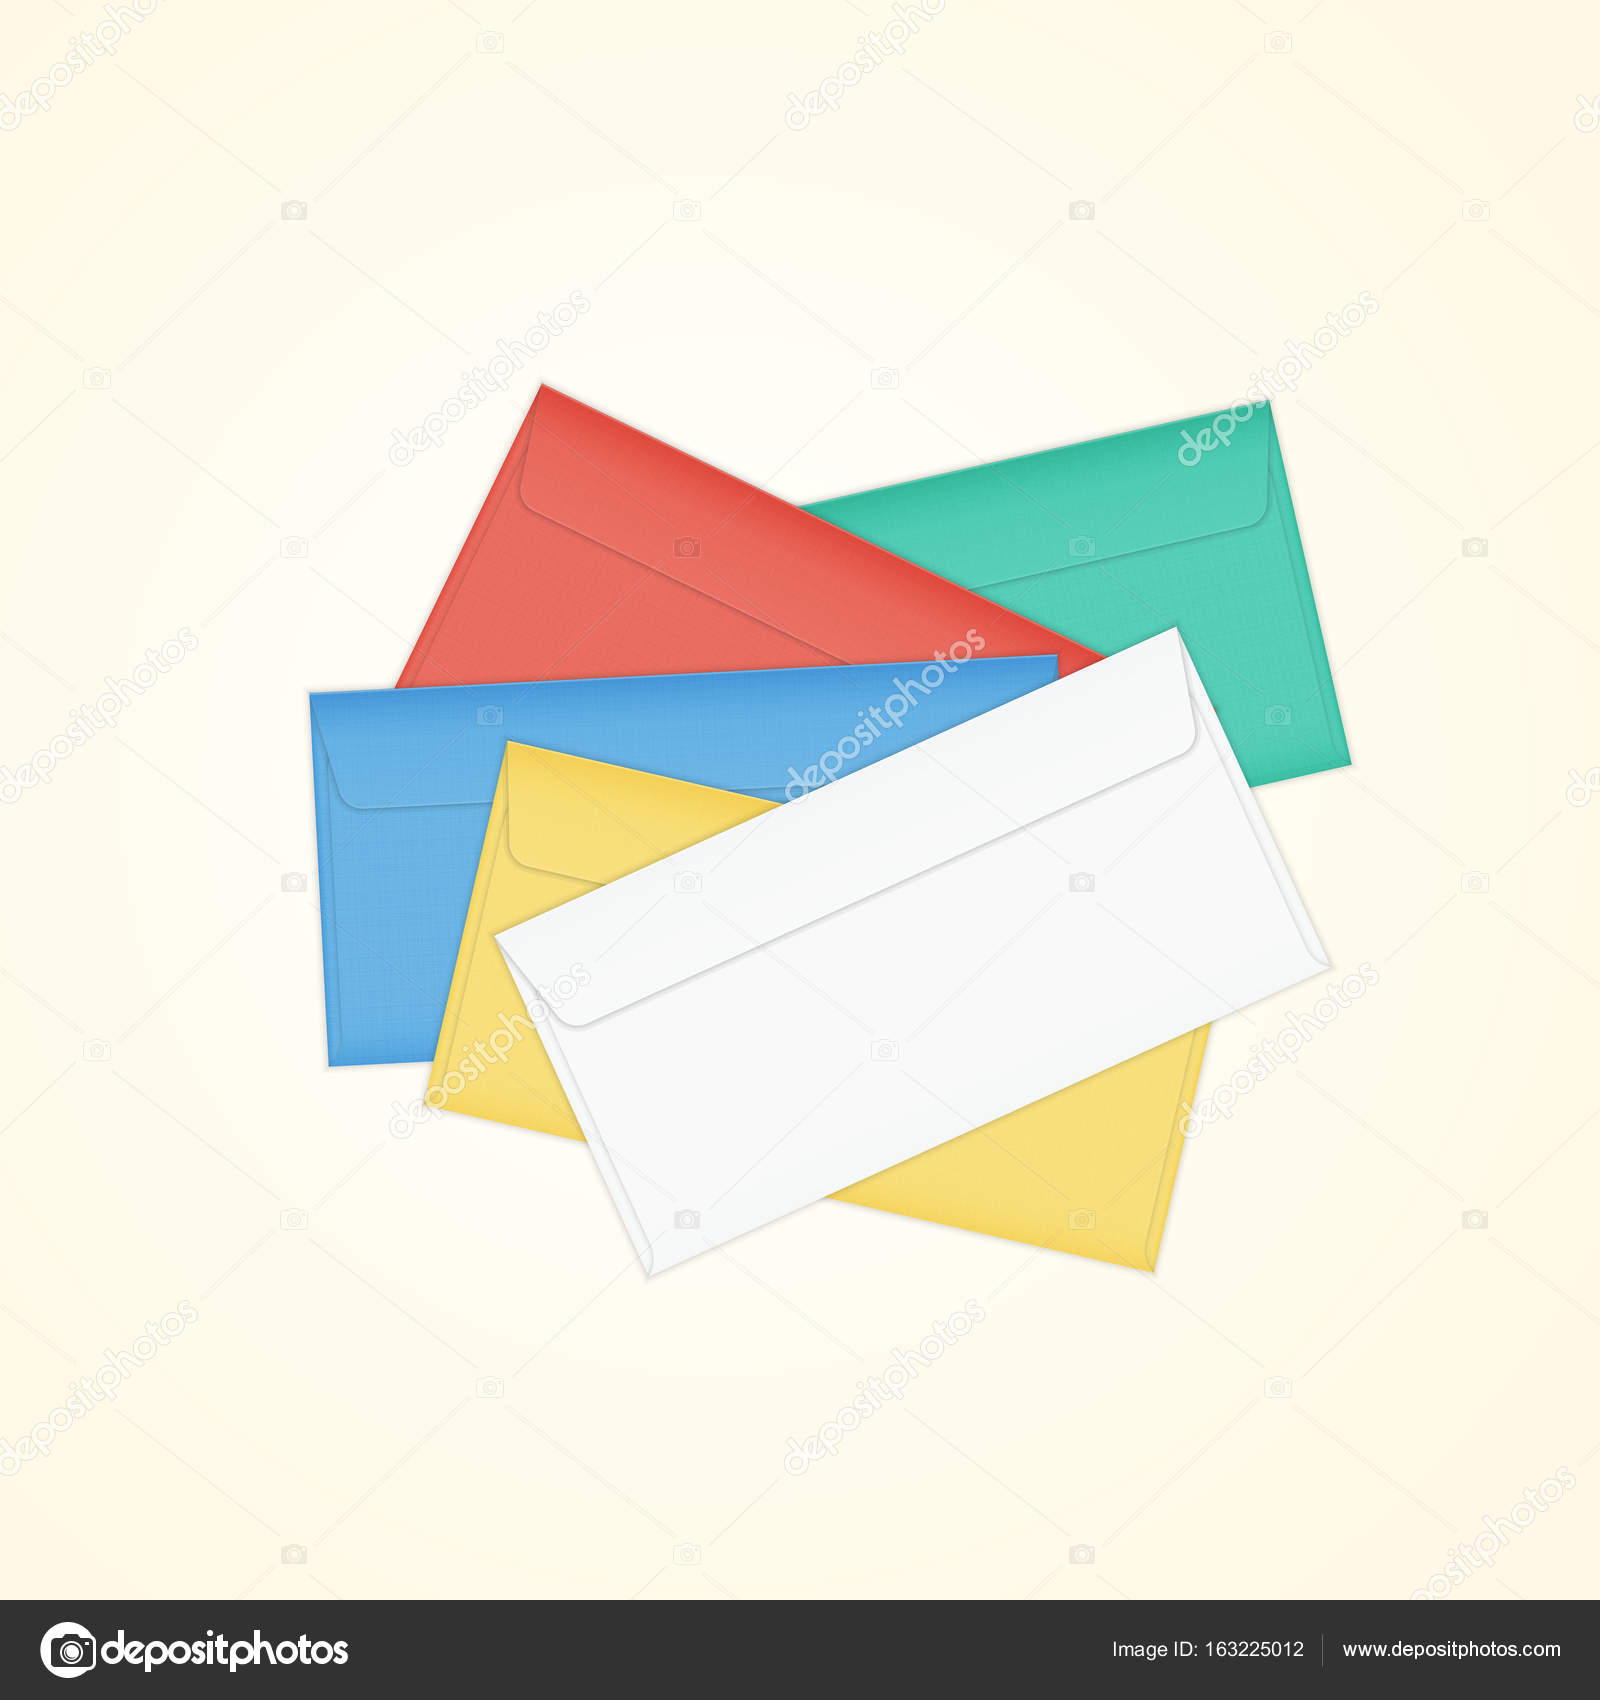 Colored card stock and envelopes - Isolated Illustration Of Different Colored Paper Envelope Stack For Business Letter Advertisement Invitation Cards Or Money Vector By Volha Belausava